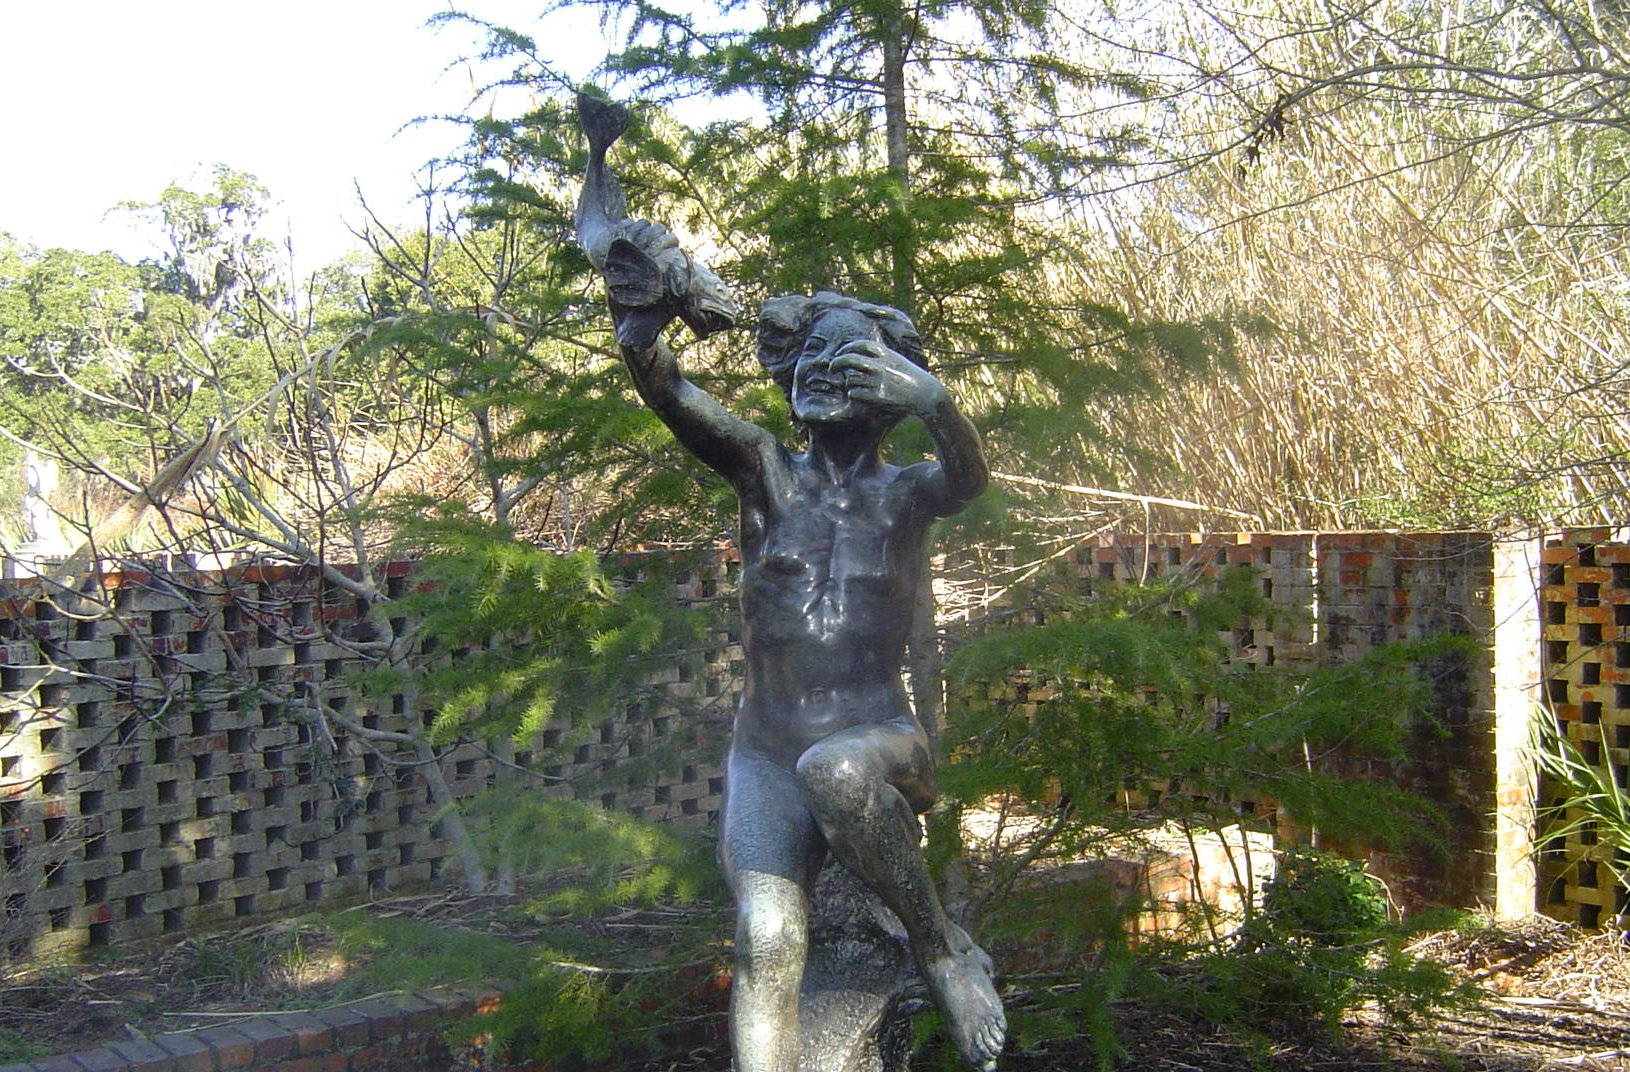 File:Brookgreen Gardens Sculpture16